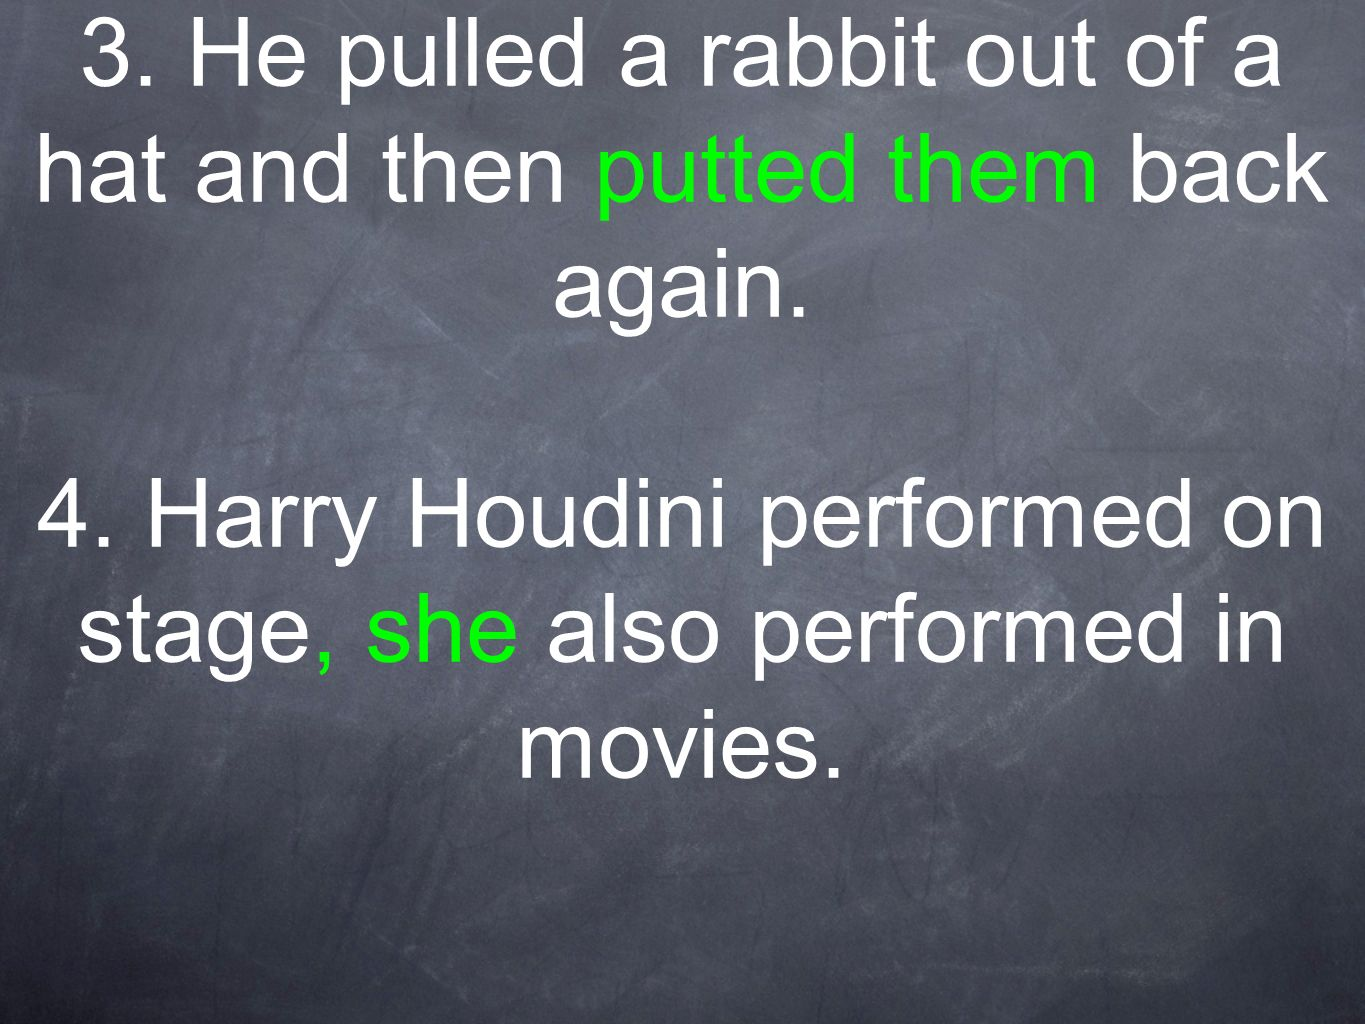 3.He pulled a rabbit out of a hat and then put it back again.